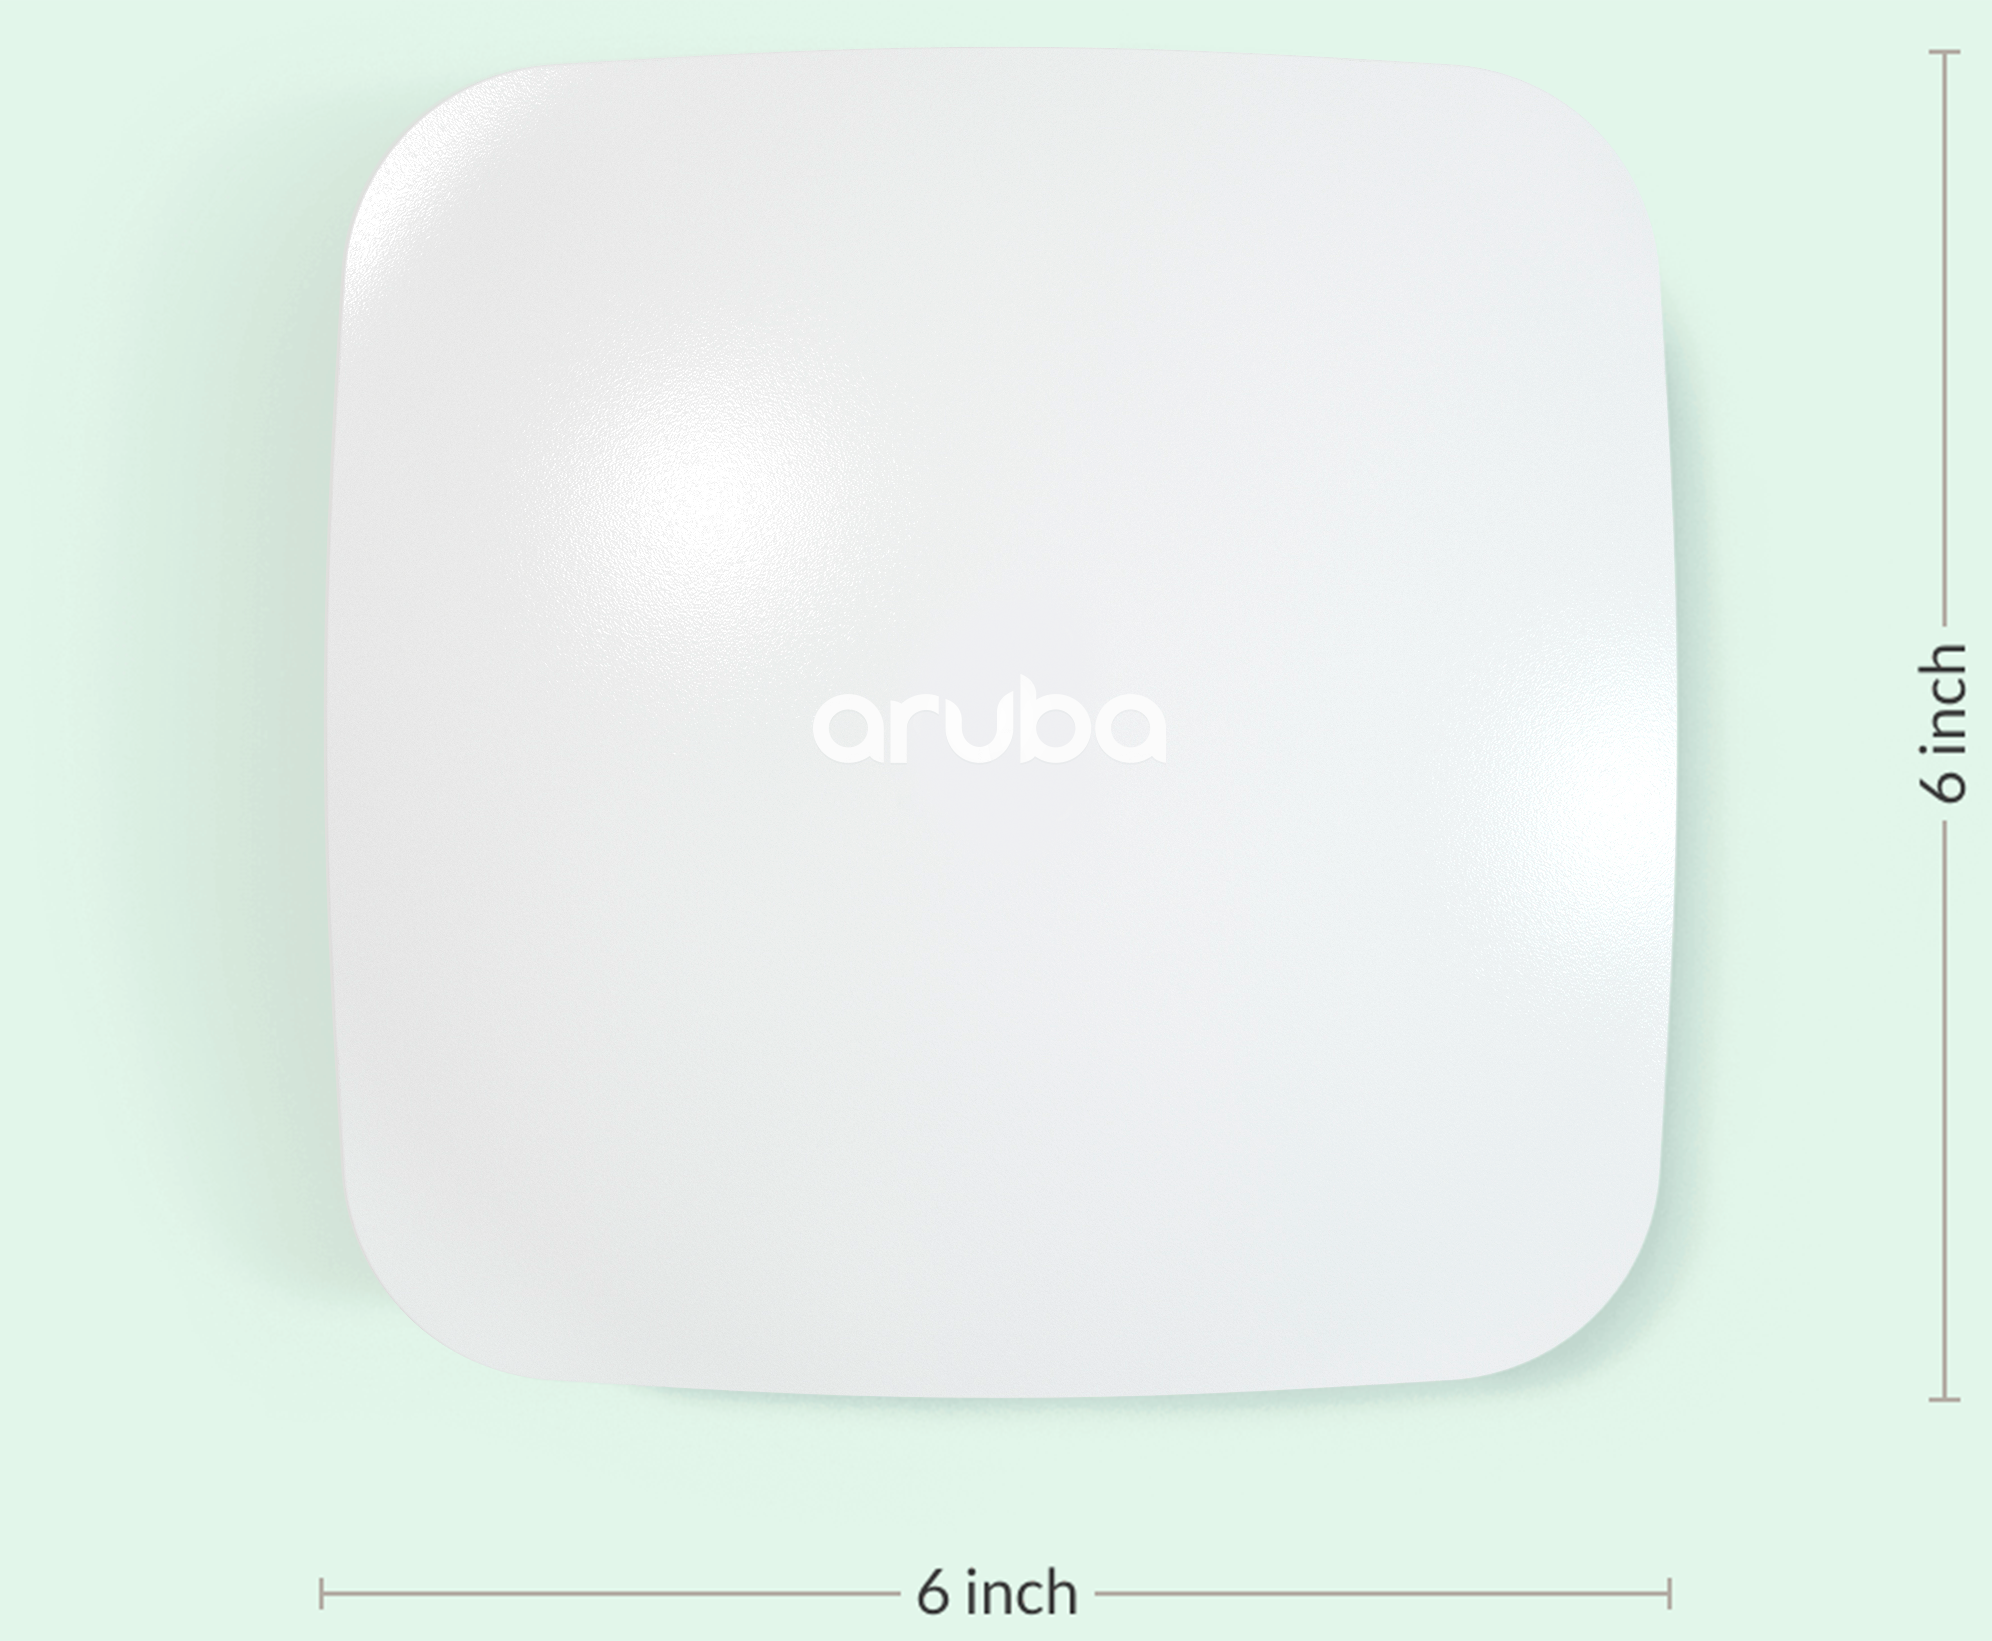 Aruba User Experience Insight Sensor - top view